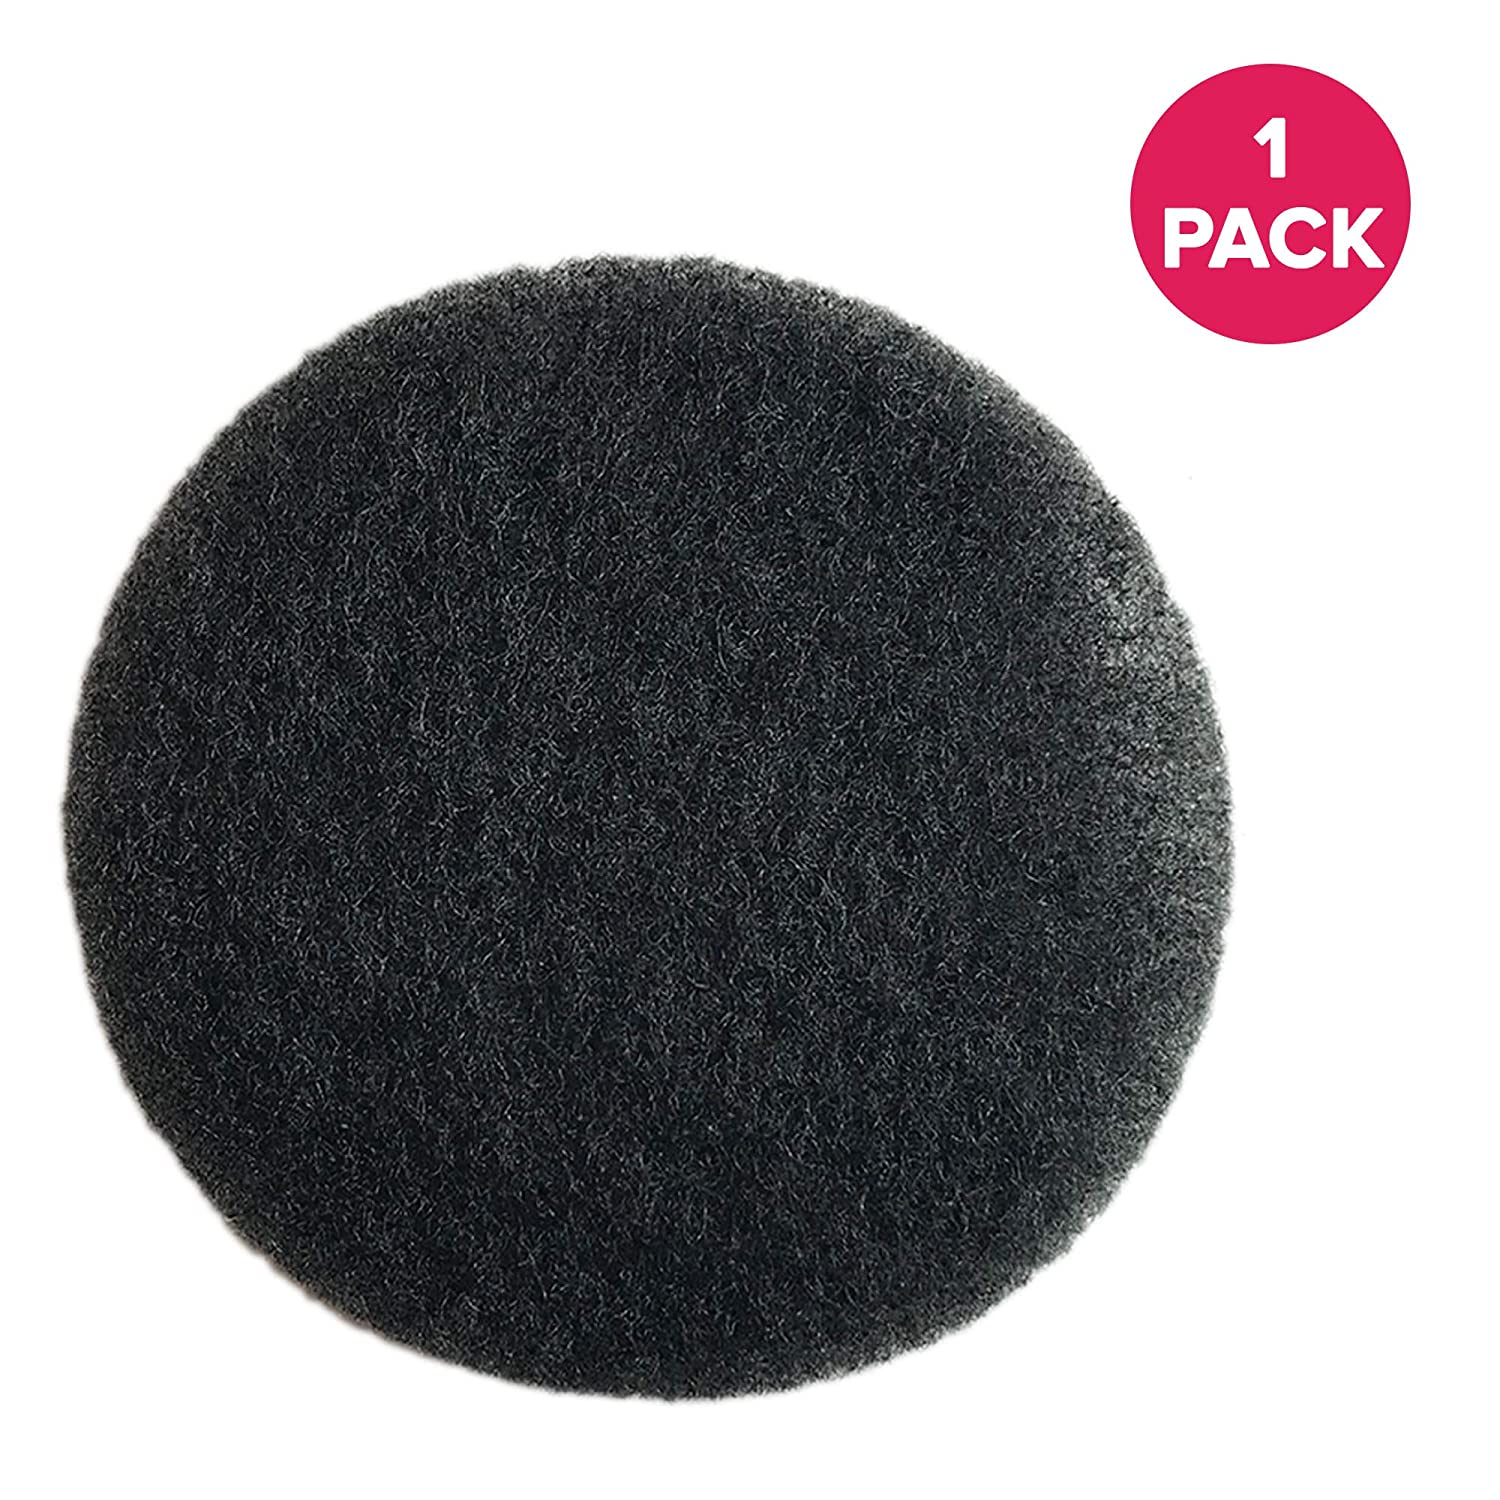 Think Crucial Replacement for Eureka Mighty Mite Motor Foam Filter Fits Mighty Mite & Sanitaire Vacuums, Compatible With Part # 38333